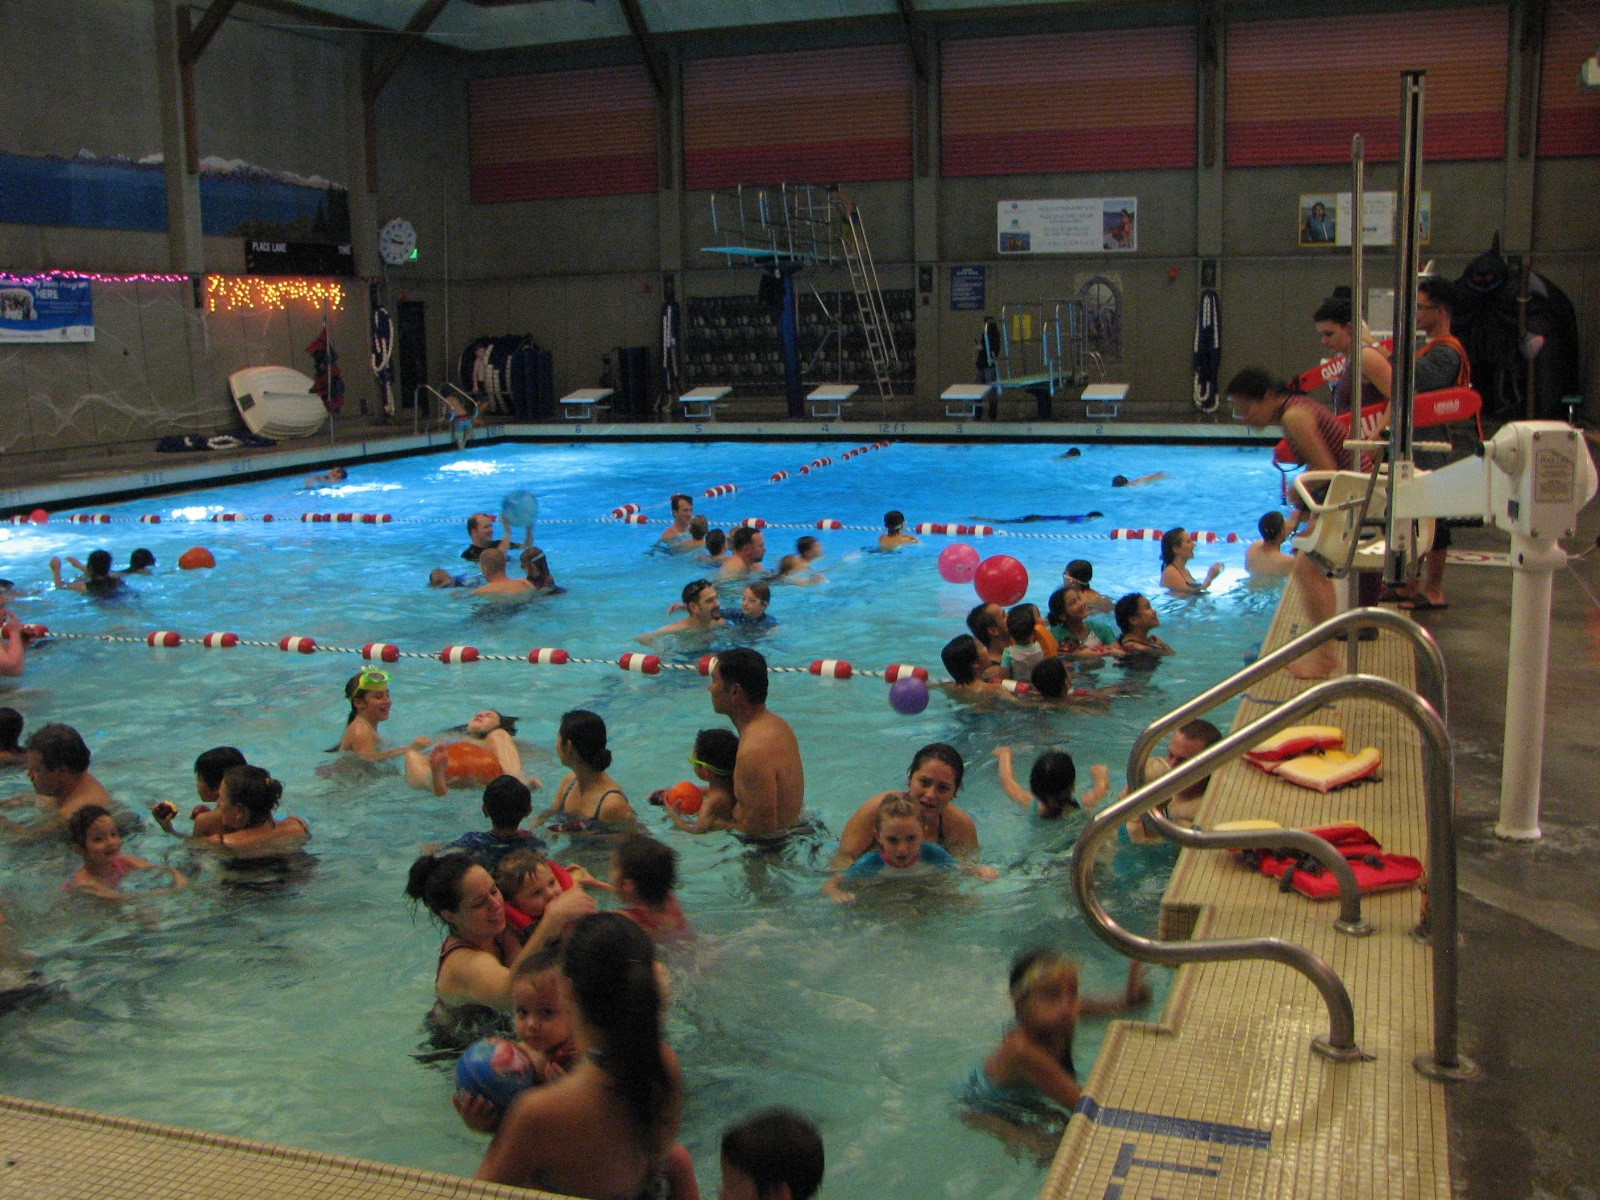 Pools a to z parks - Best public swimming pools in massachusetts ...